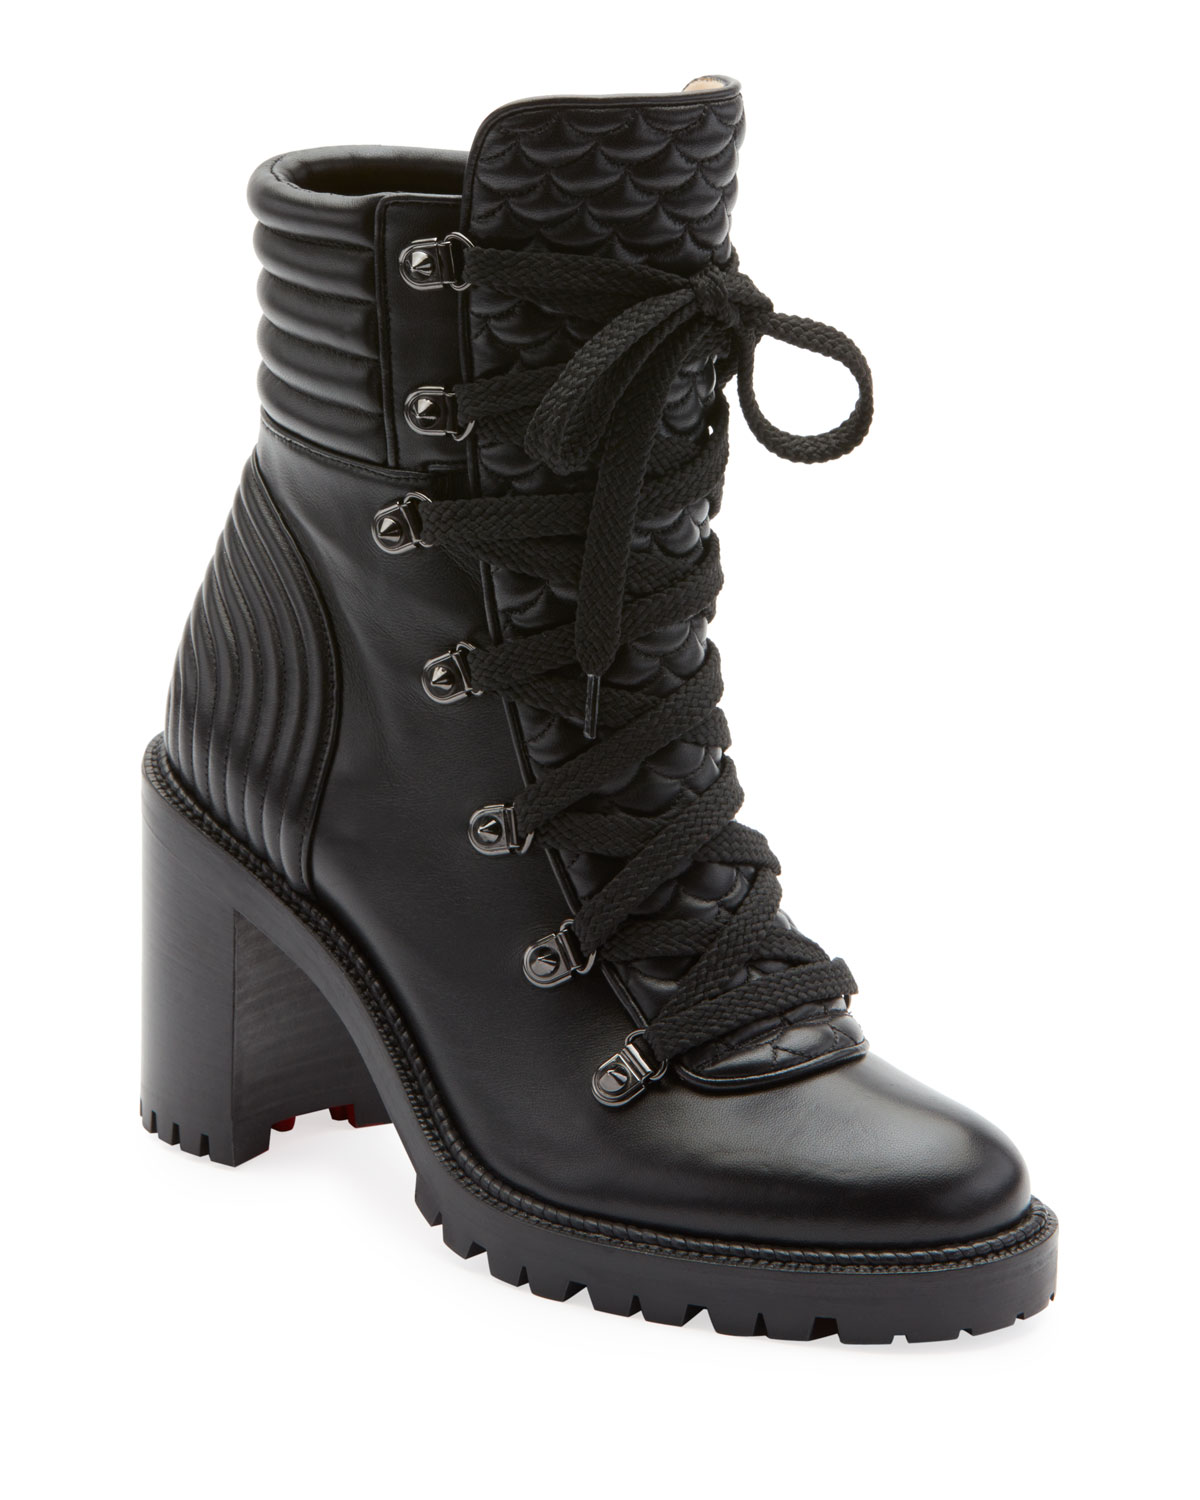 pas cher pour réduction e6cca 435f3 Mad Lace-Up Leather Block-Heel Hiker Boots